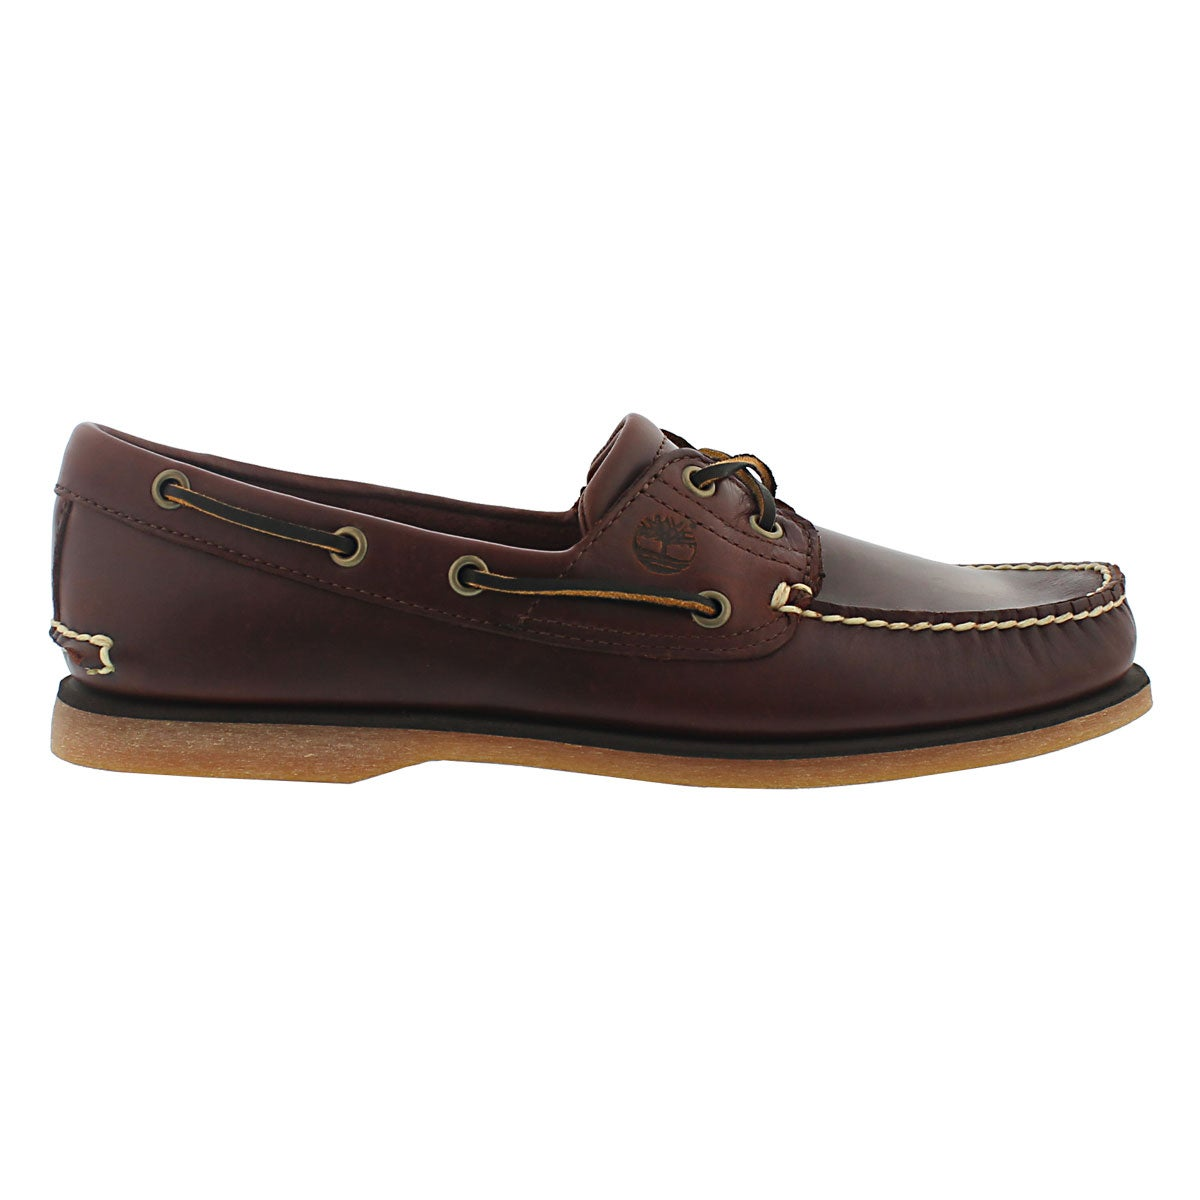 Mns Classic Boat rootbeer 2eye boat shoe